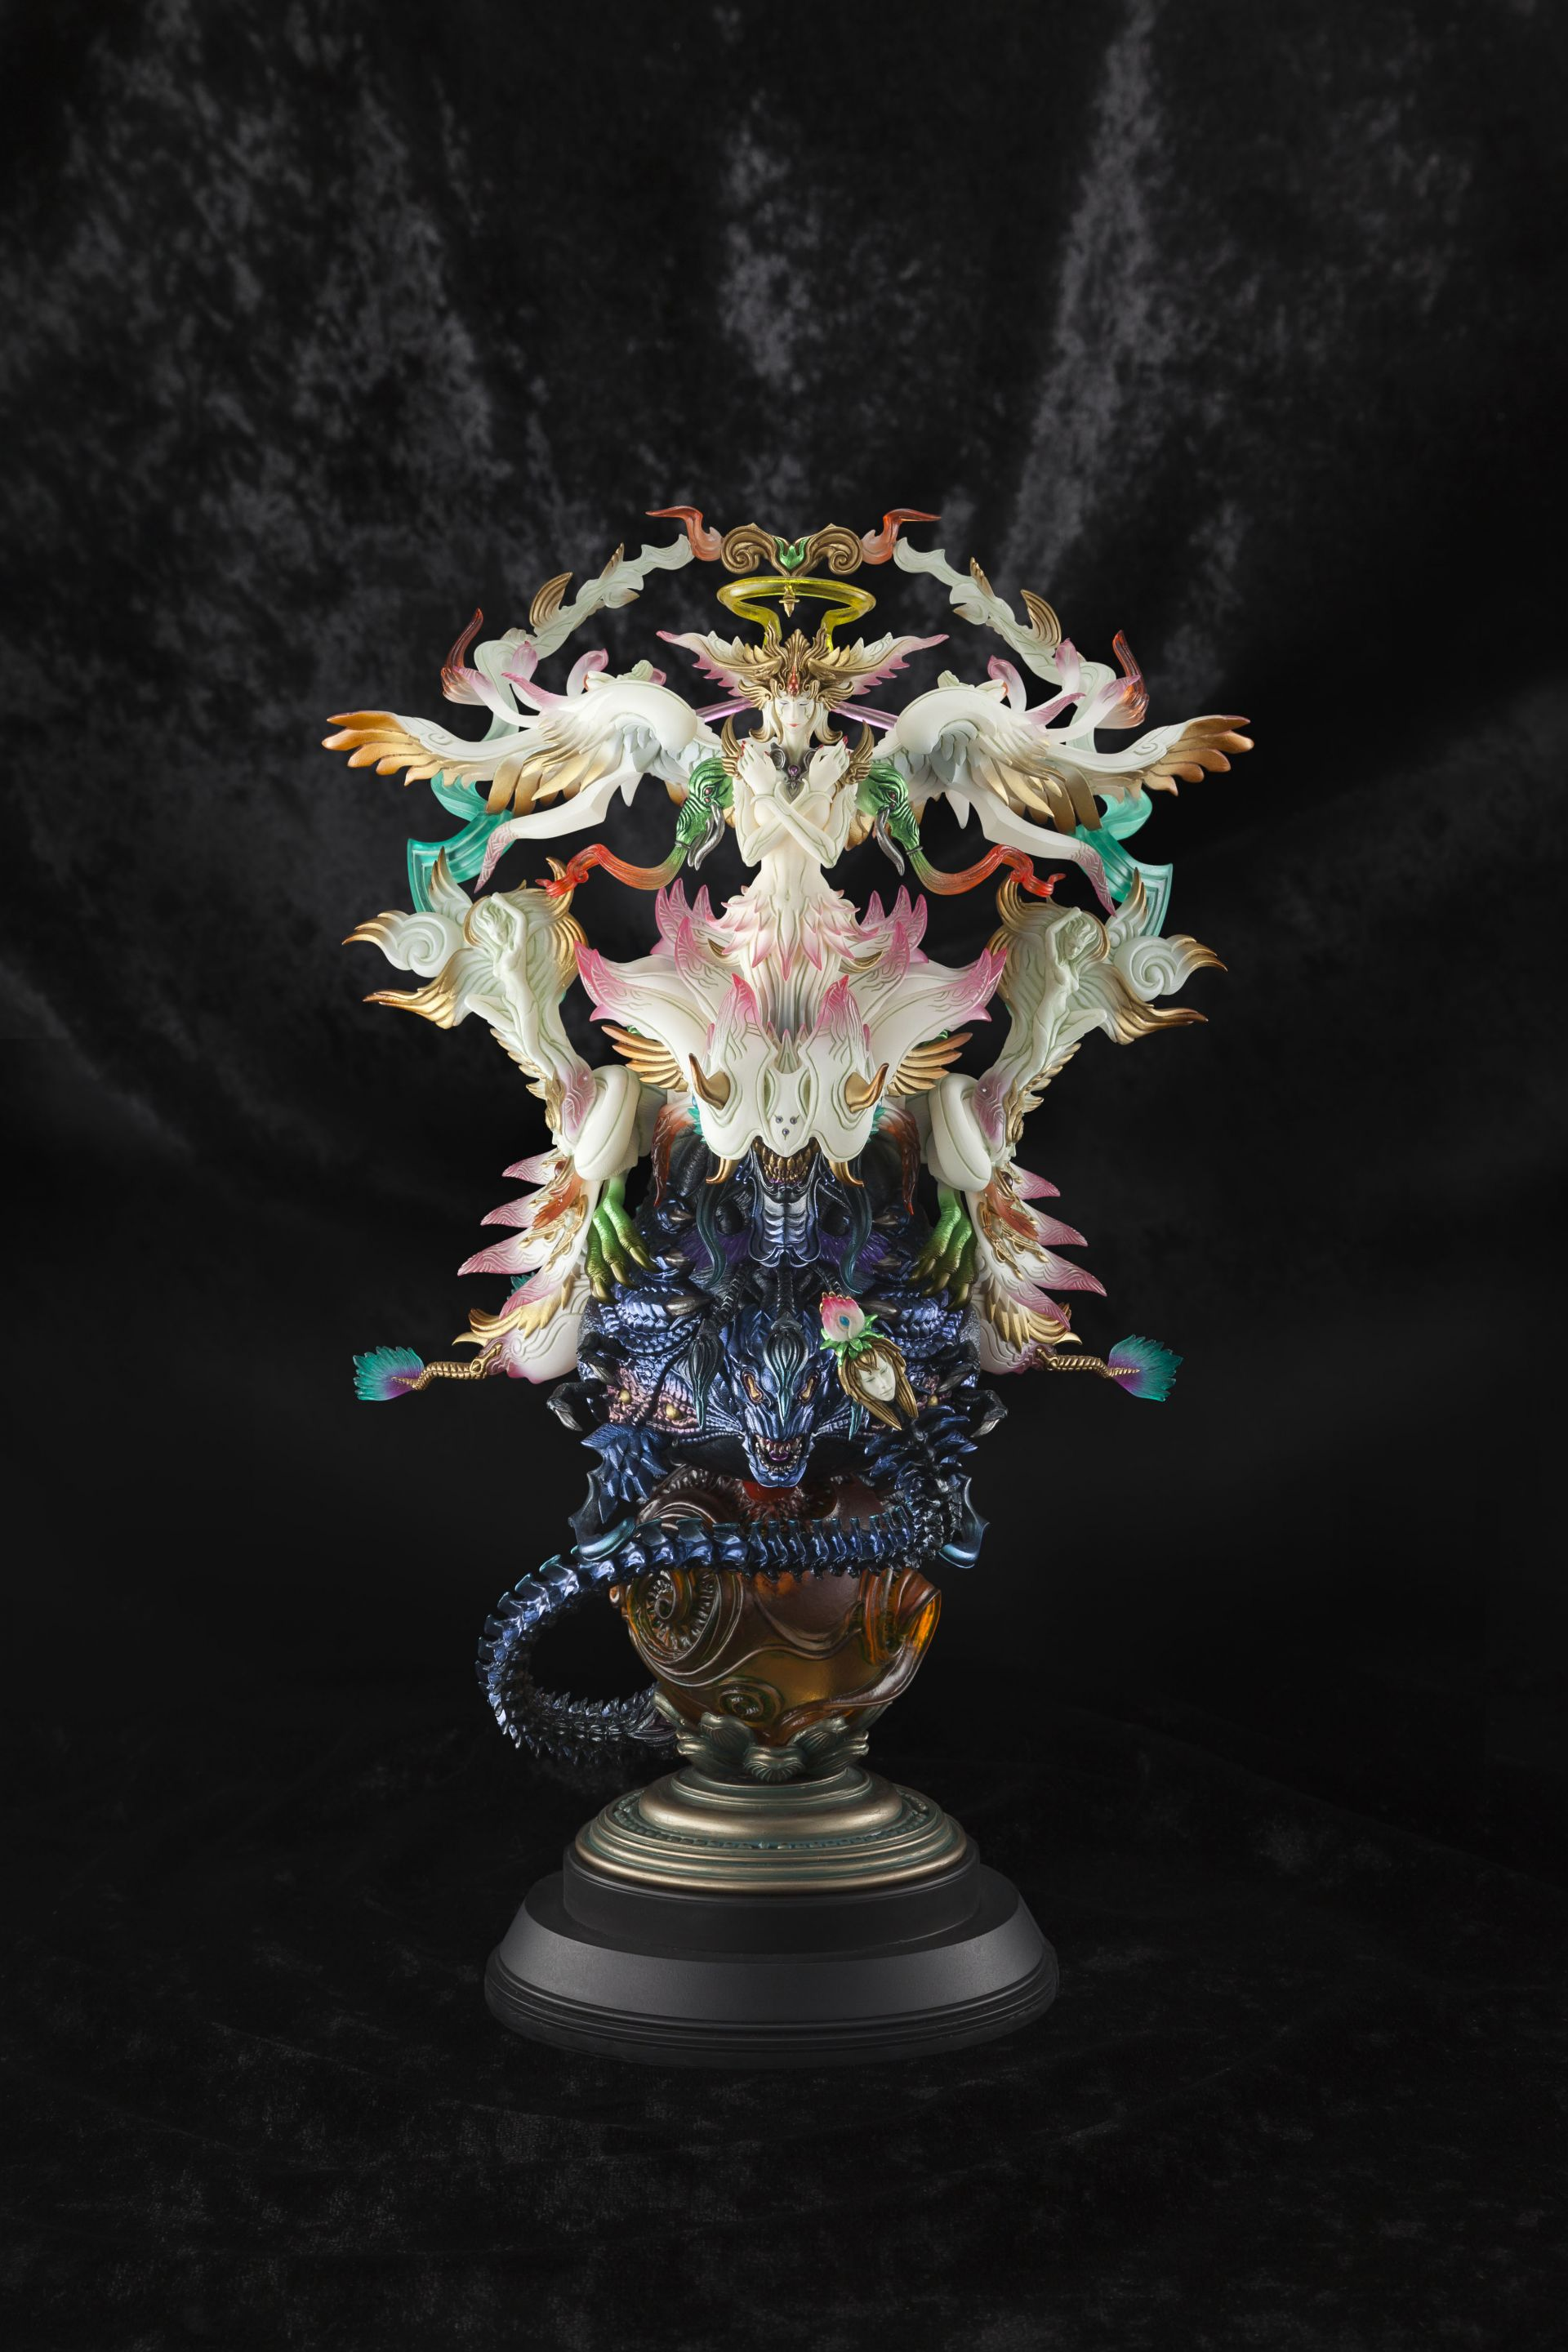 FINAL FANTASY XIV MEISTER QUALITY FIGURE – Ultima, the High Seraph